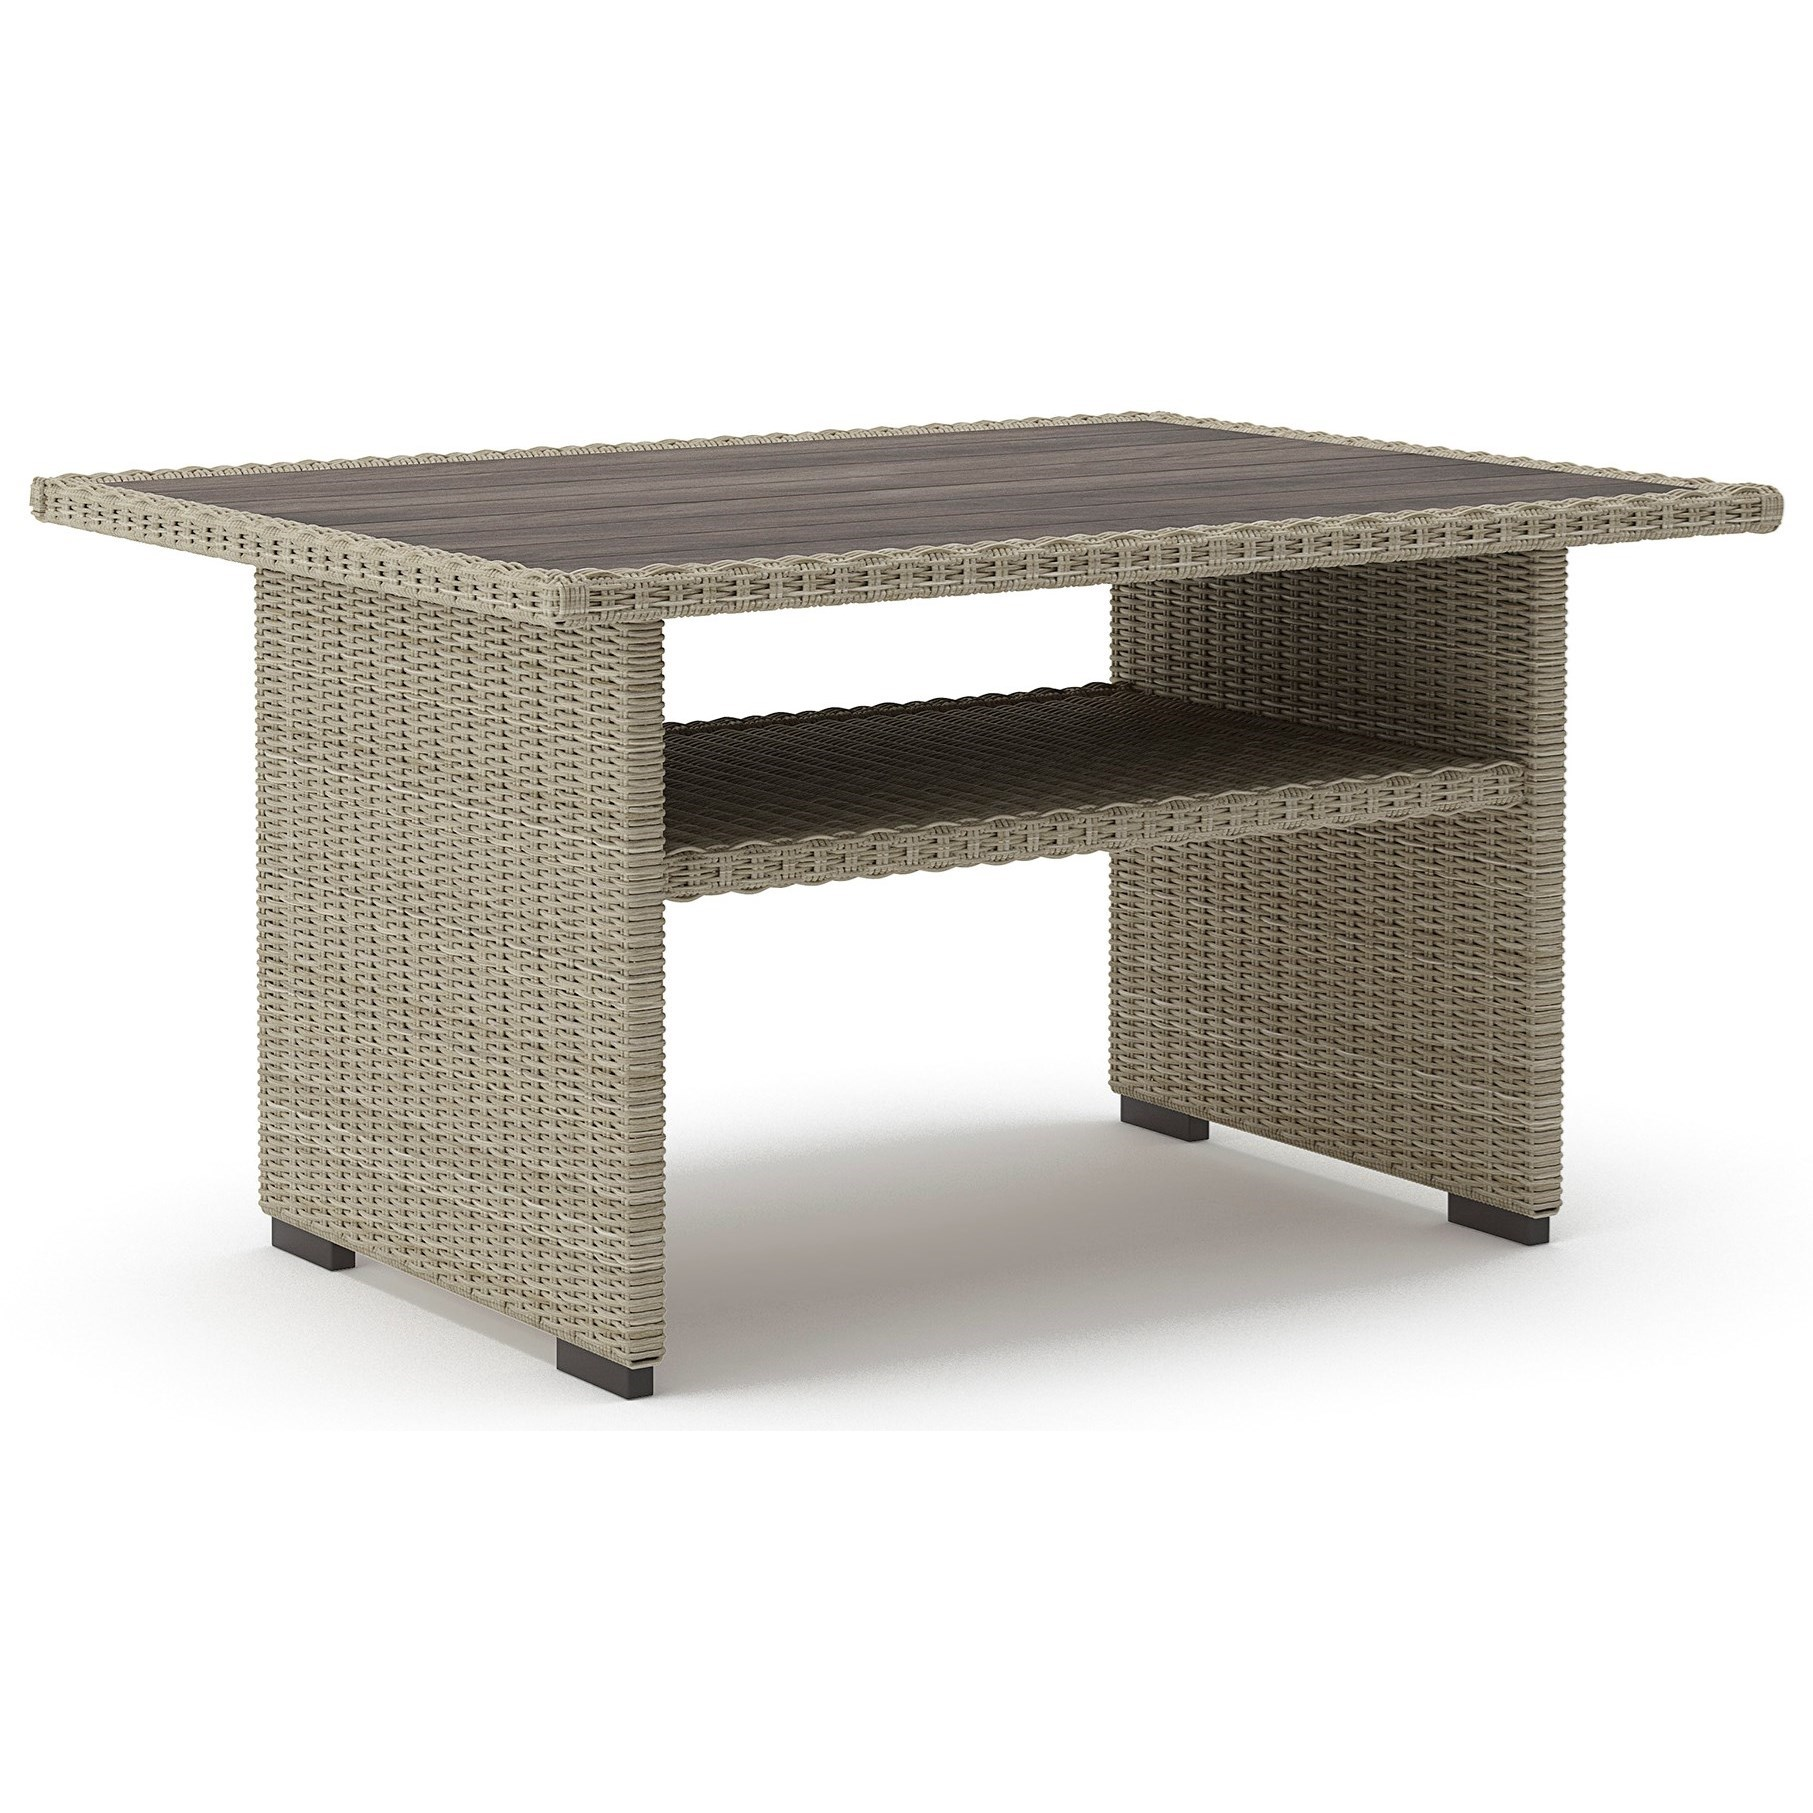 Silent Brook Rectangular Multi-Use Table by Signature at Walker's Furniture